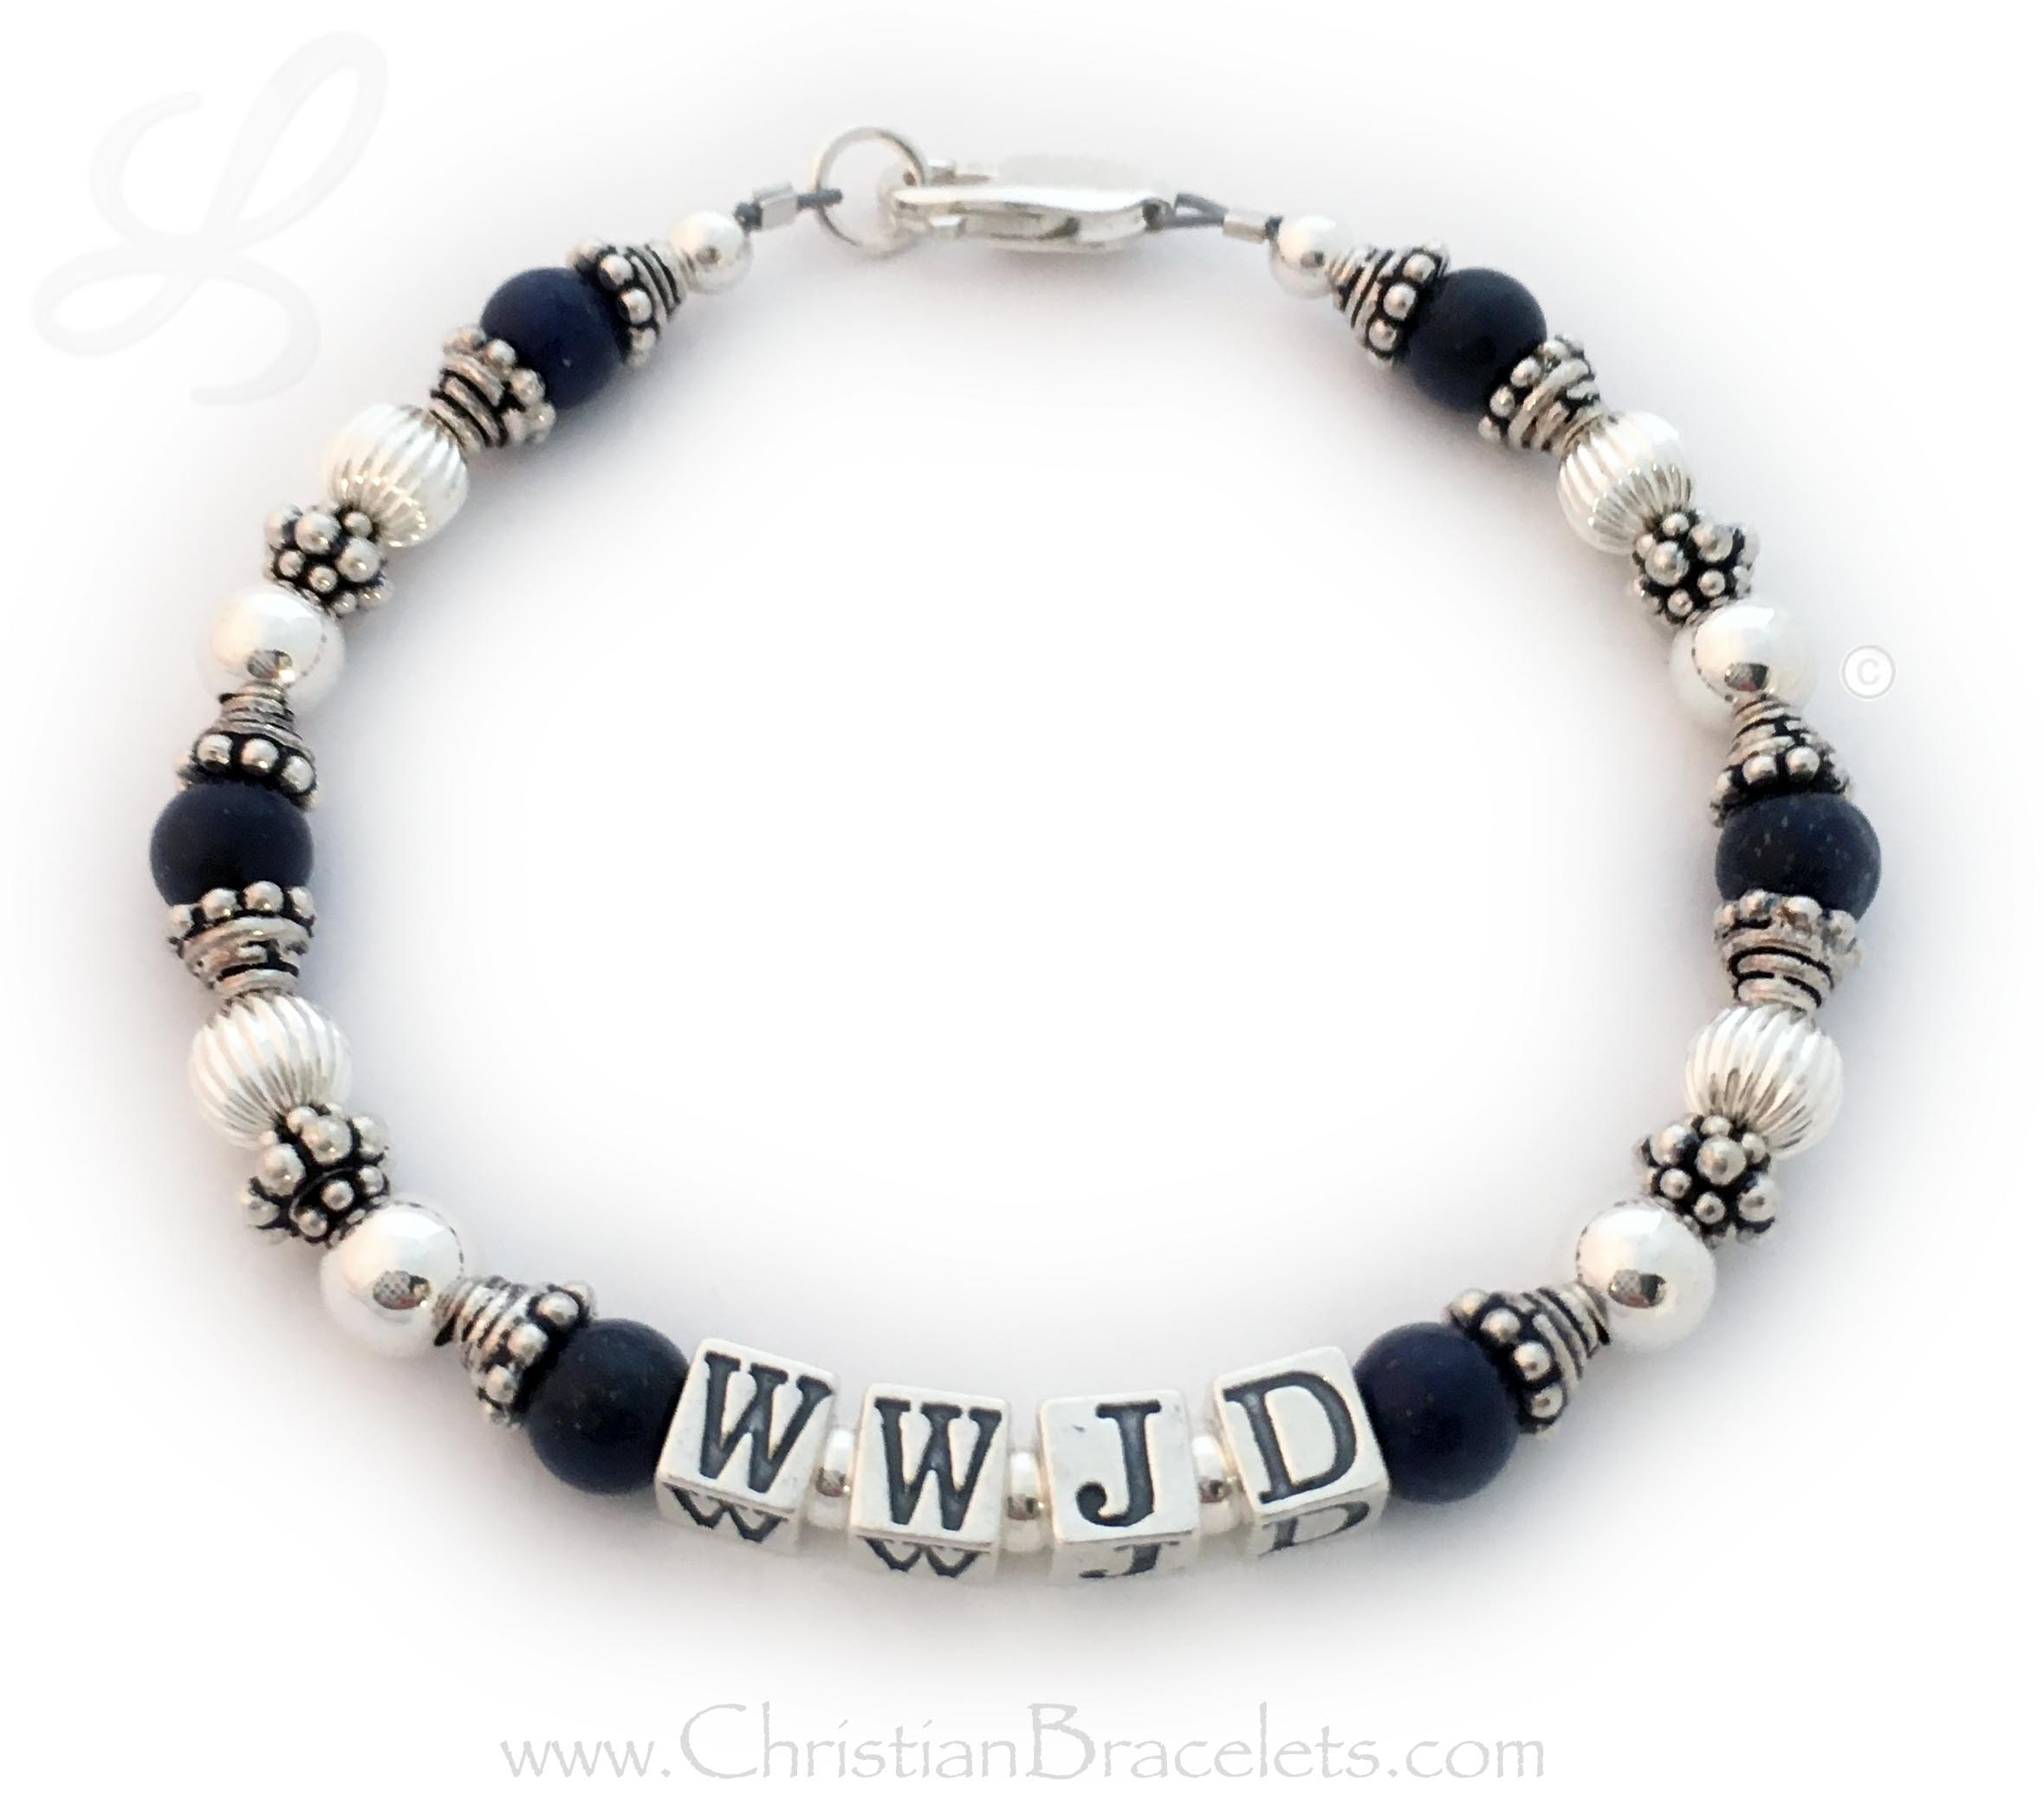 CB-WWJD-7  Lapis Lazuli What Would Jesus Do Bracelet - Shown with a lobster claw clasp, 5.5mm block letters. Size: 7 1/2""